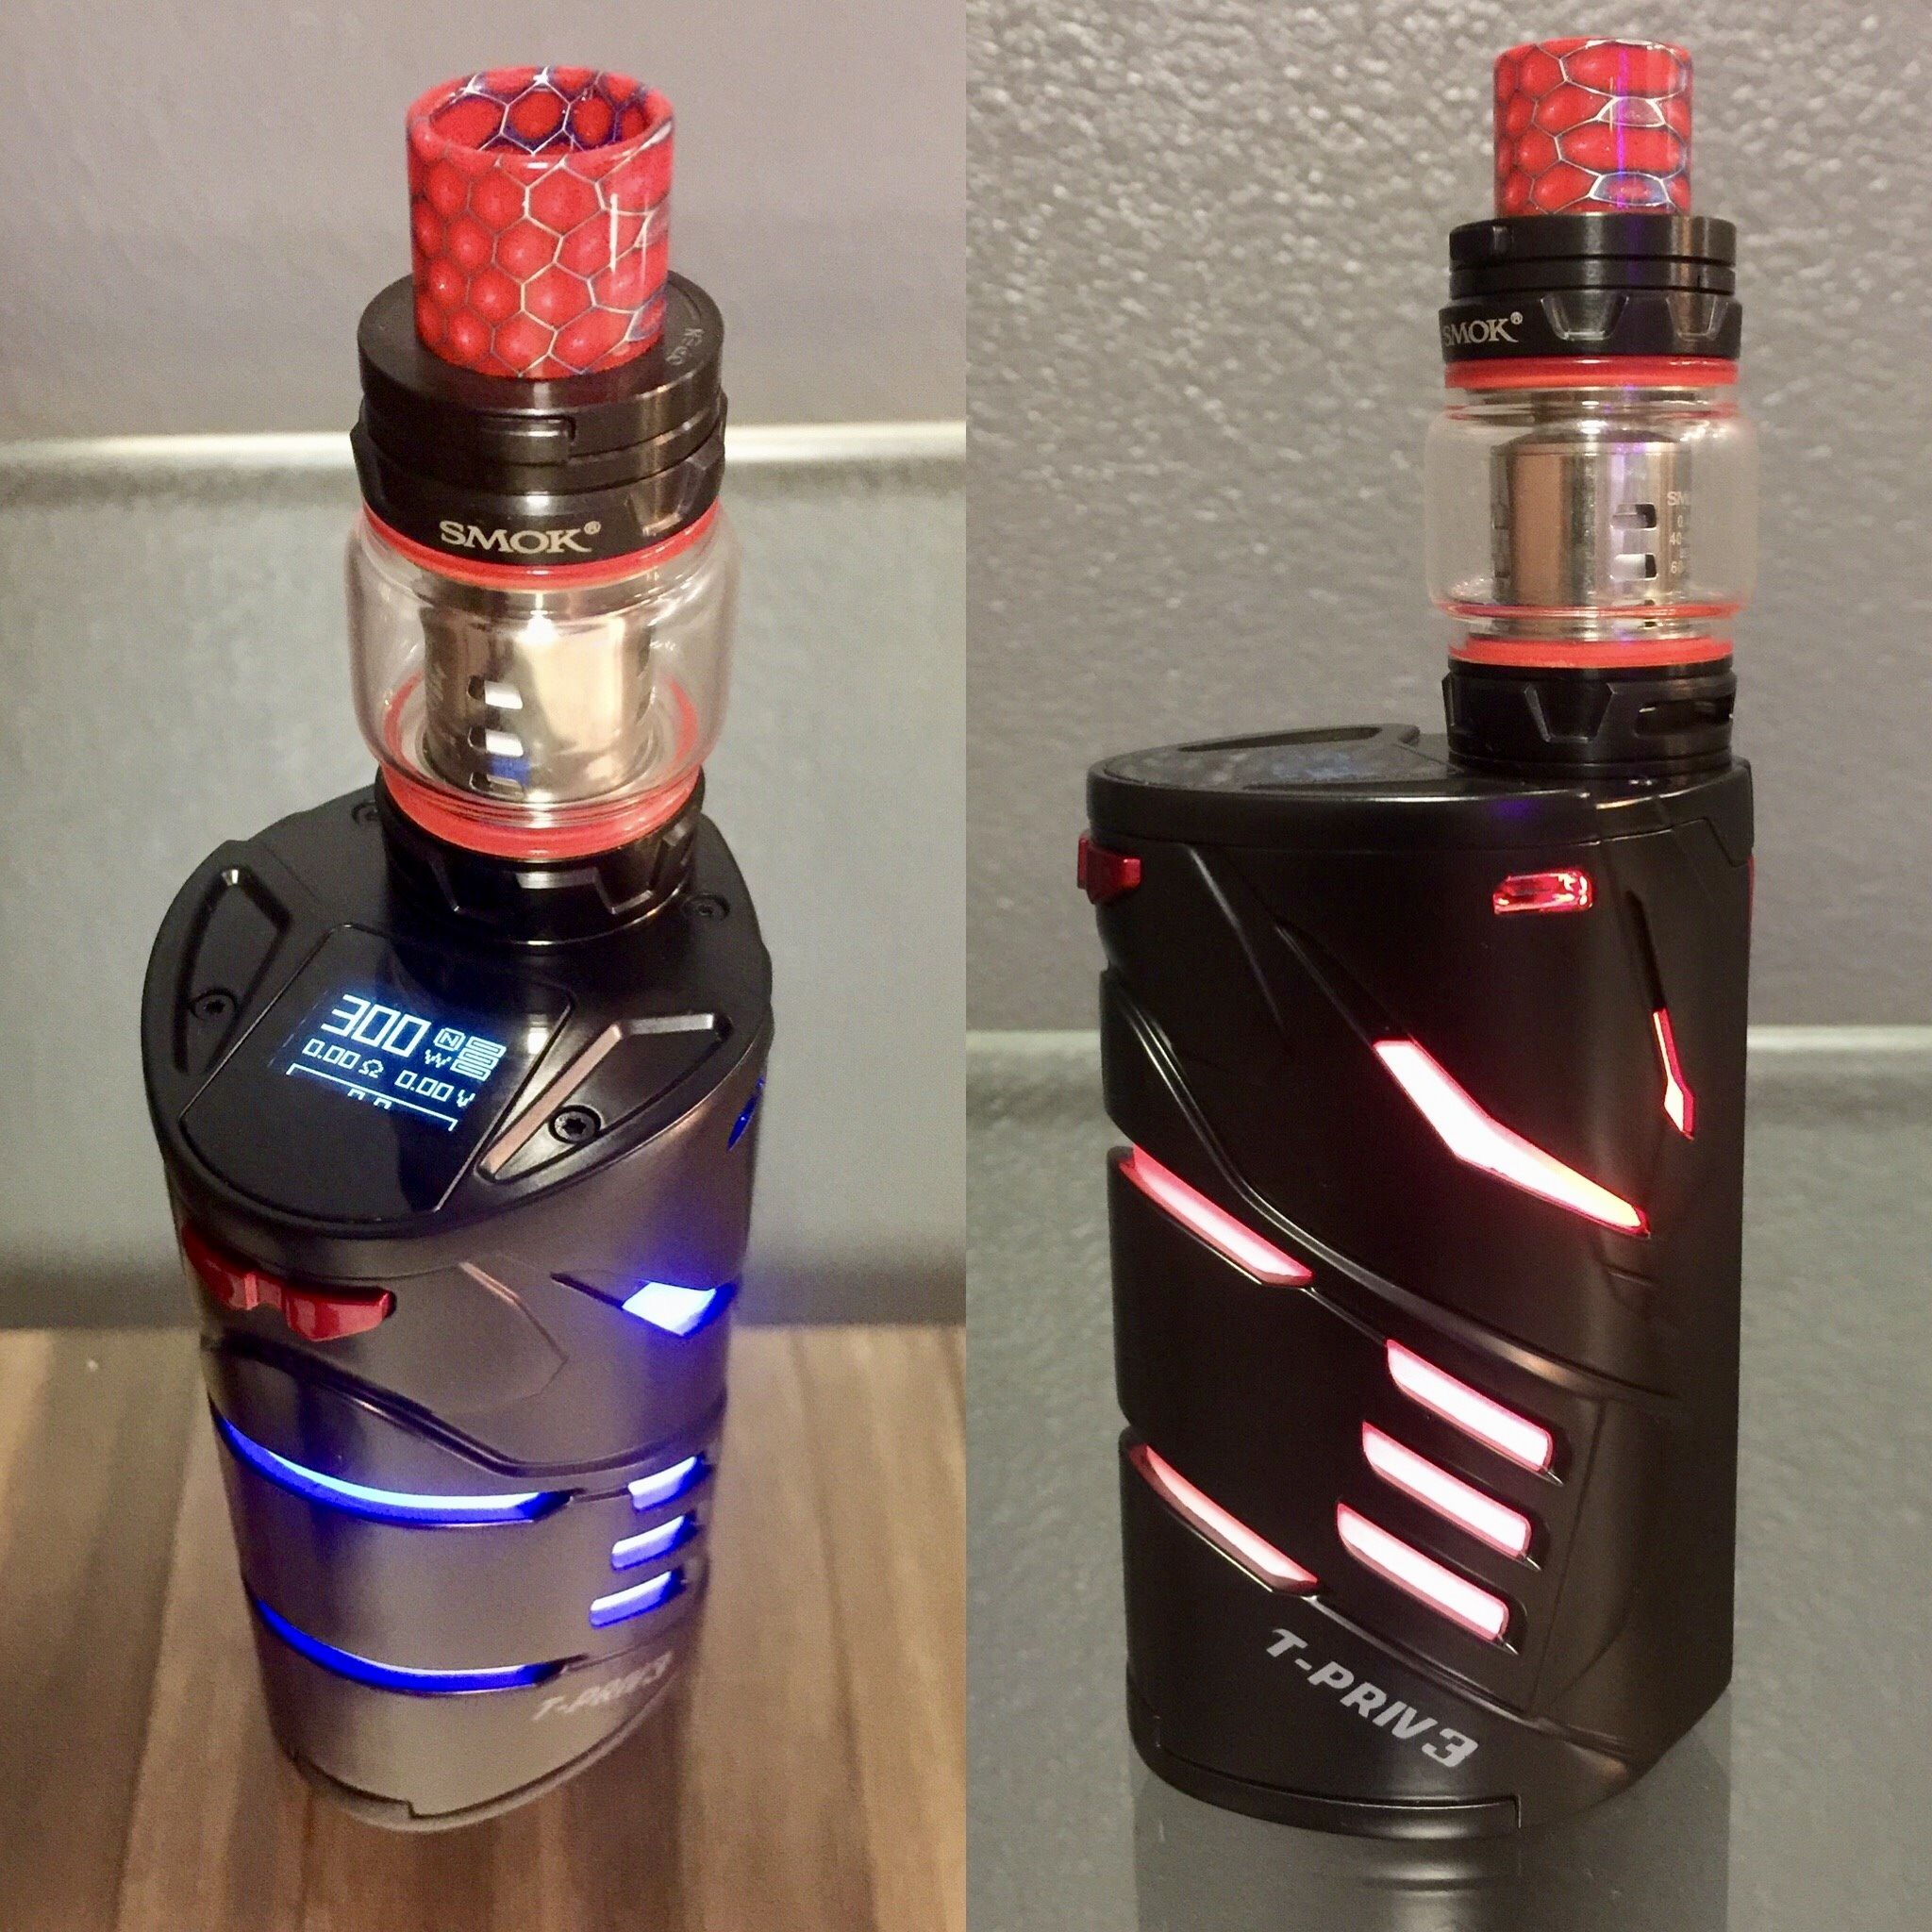 If you want massive vapor with insane battery life, the new SMOK T